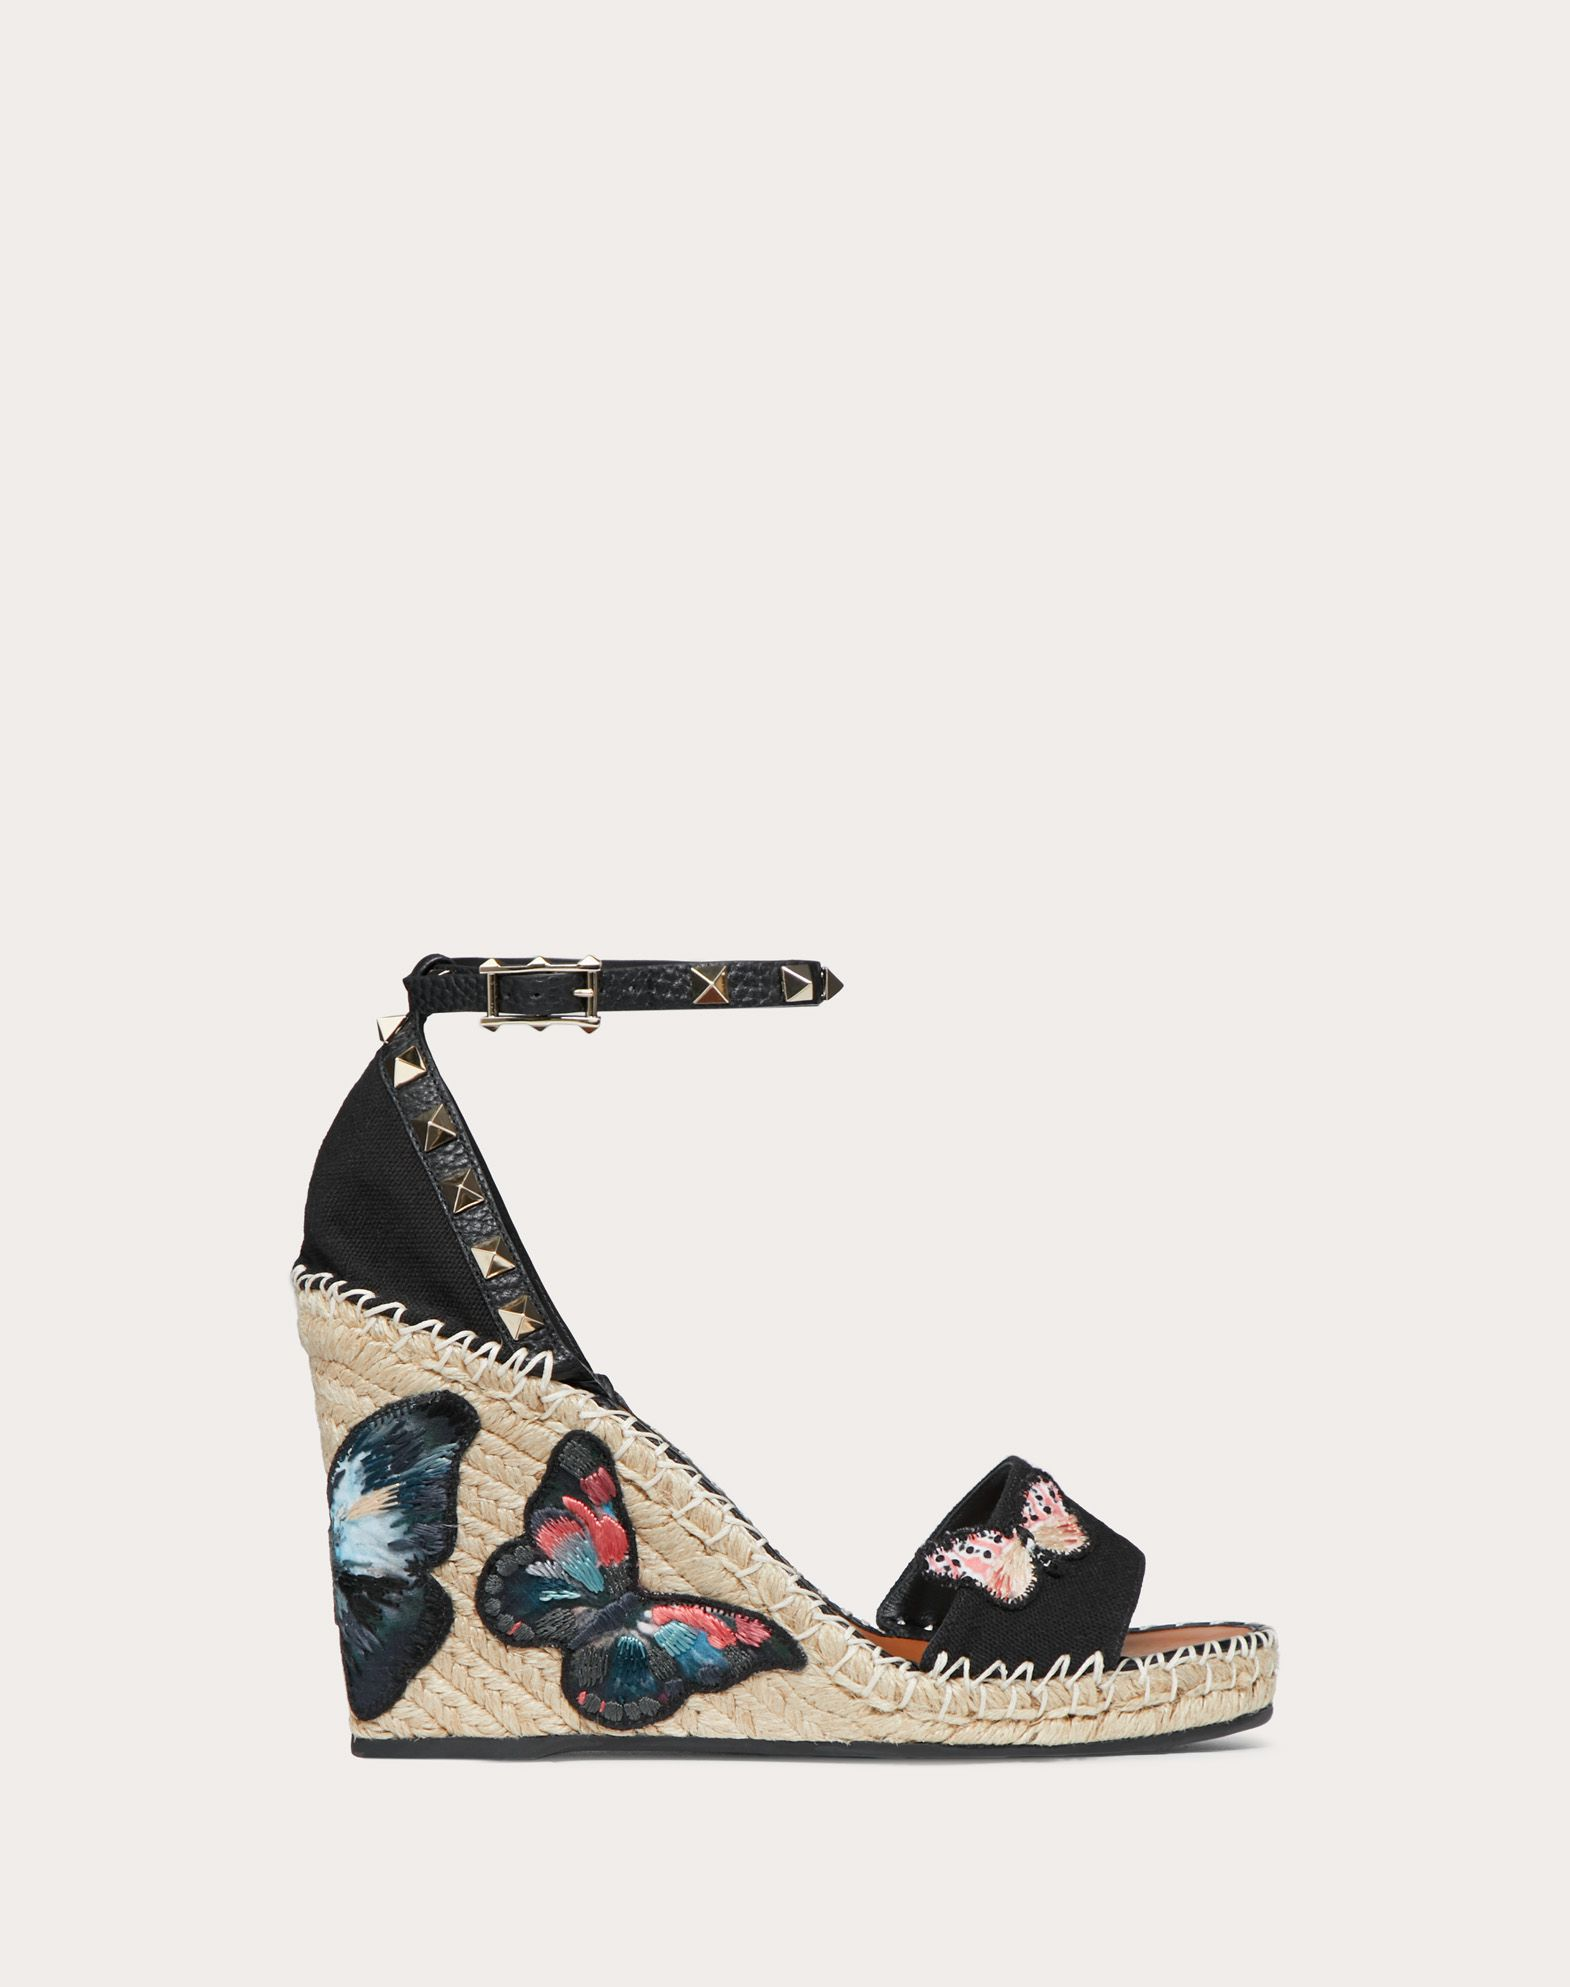 Embroidered Butterfly Canvas Wedge Sandal 105 mm